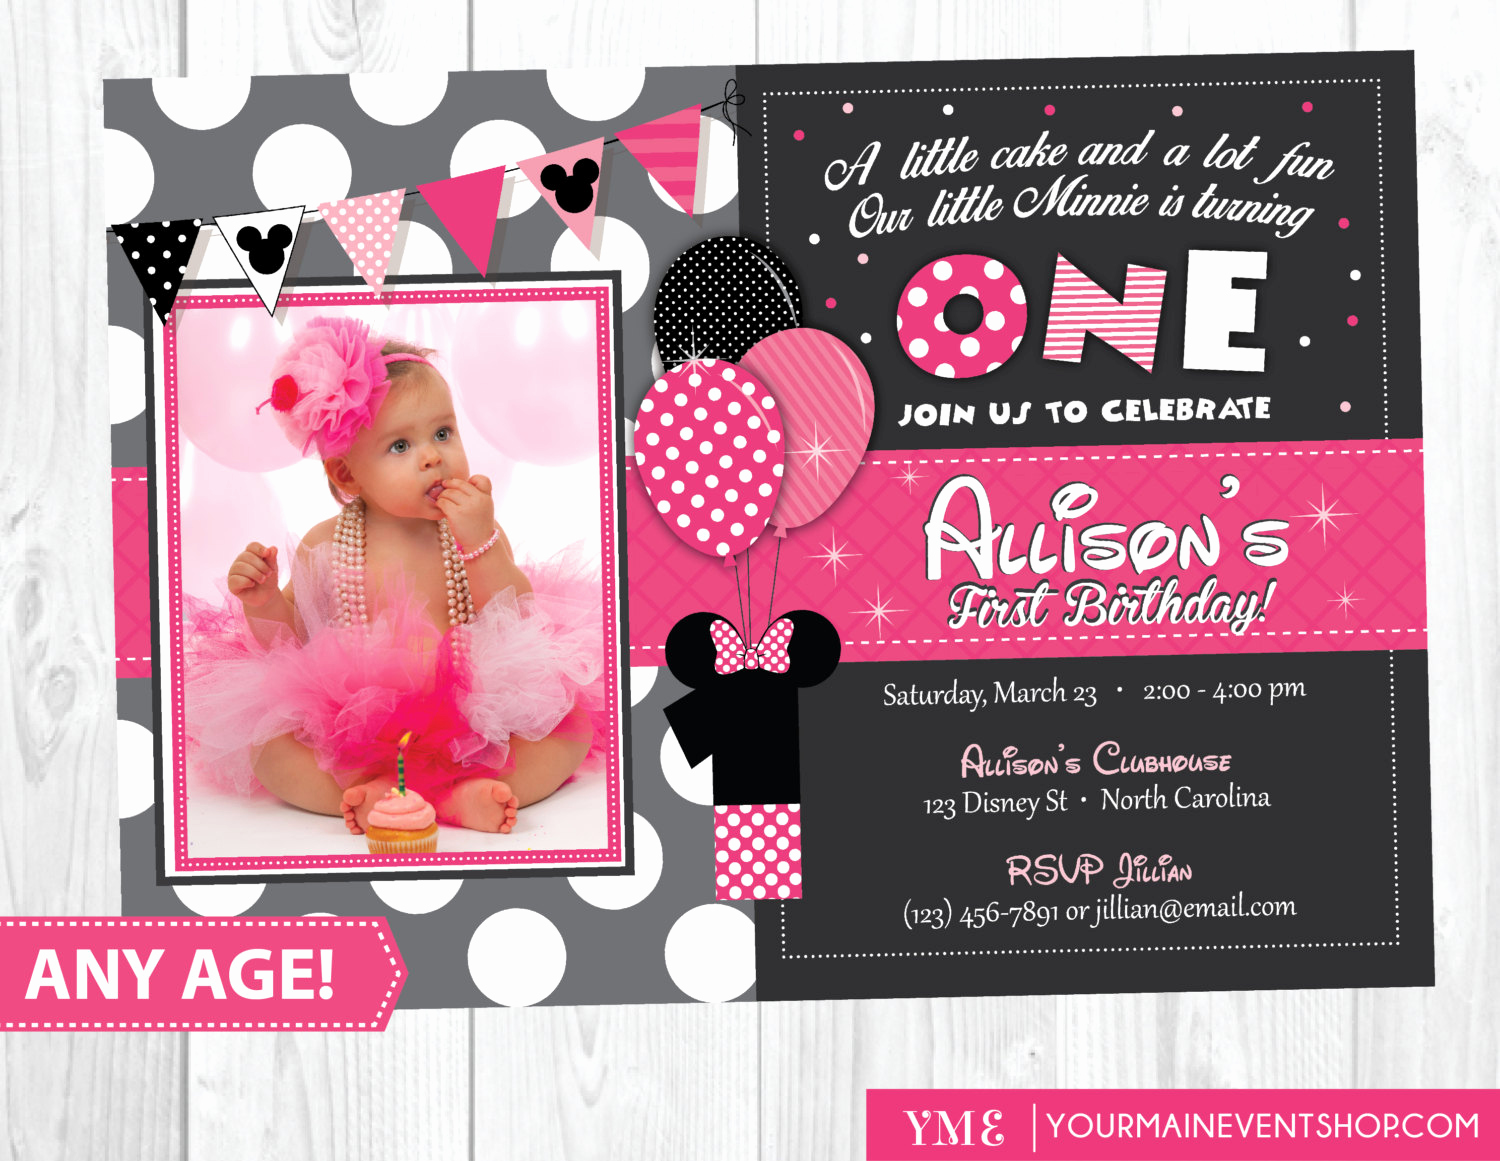 Minnie Mouse Invitation Wording Lovely Minnie Mouse Birthday Invitation Minnie Mouse Inspired